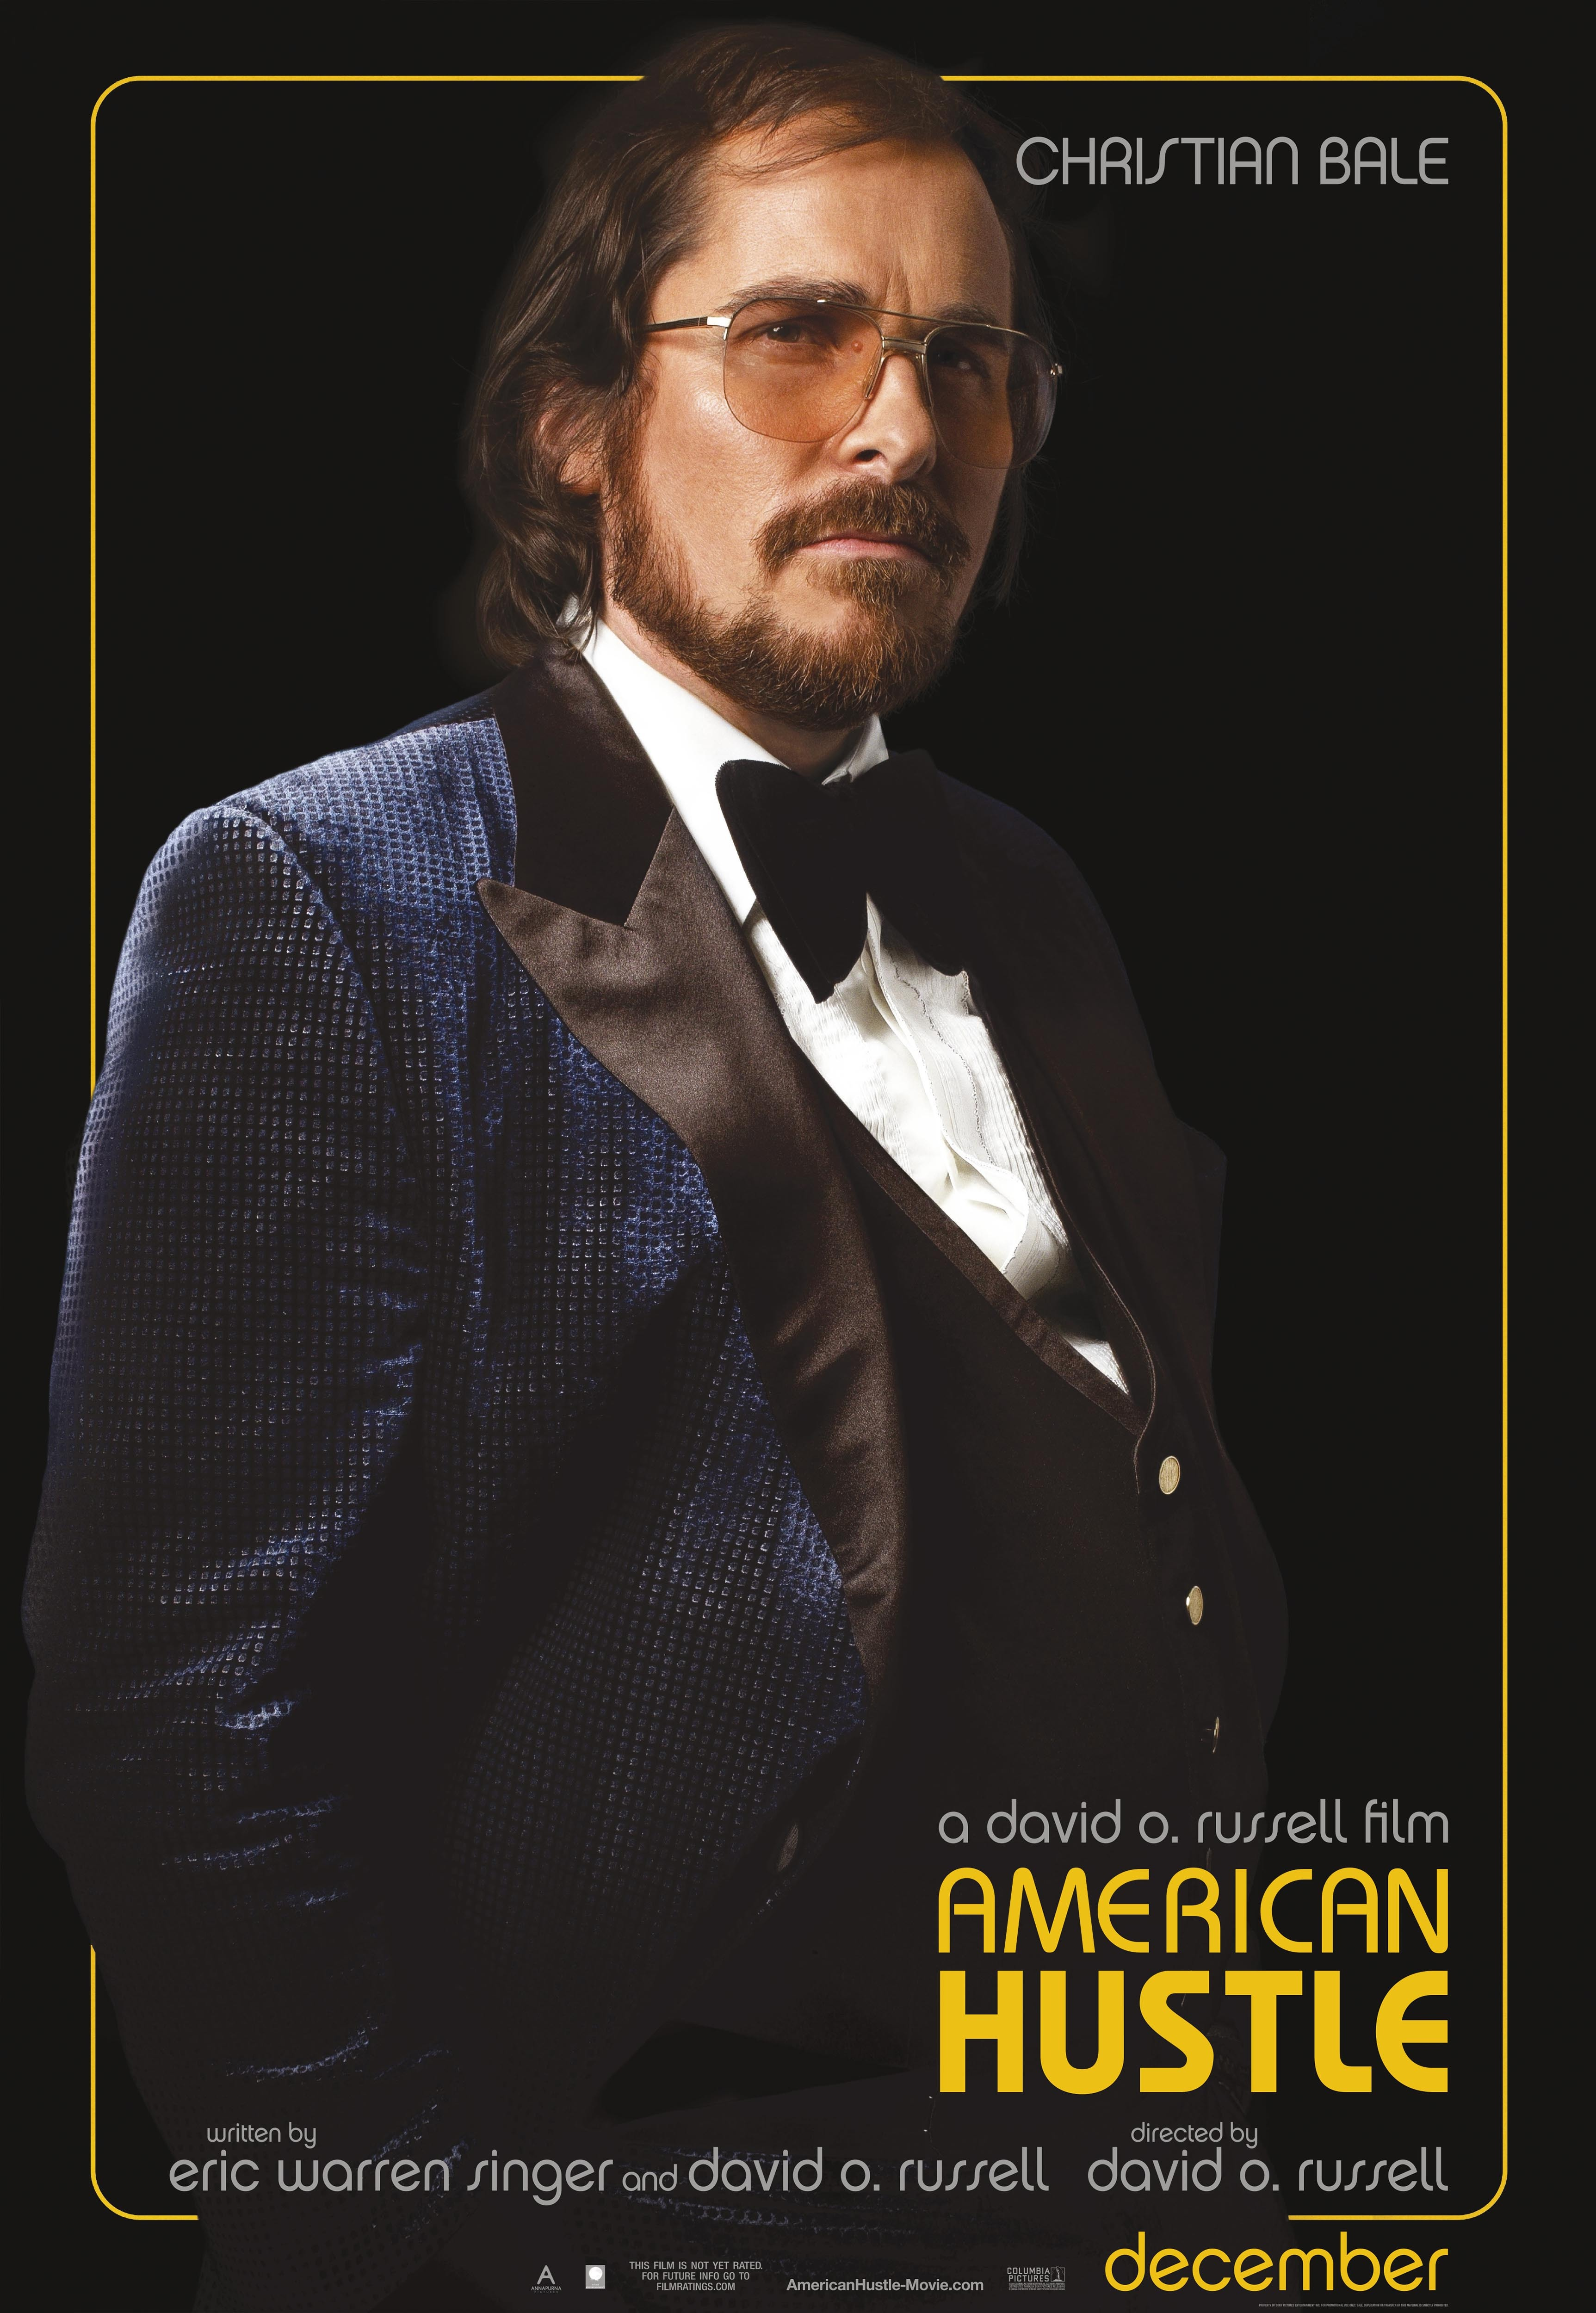 """Irving Rosenfield's velvet suit, from David O. Russell's """"American Hustle,"""" 2013. Designed by Oscar(R)-nominated costume designer, Michael Wilkinson. (Photo: Business Wire)"""